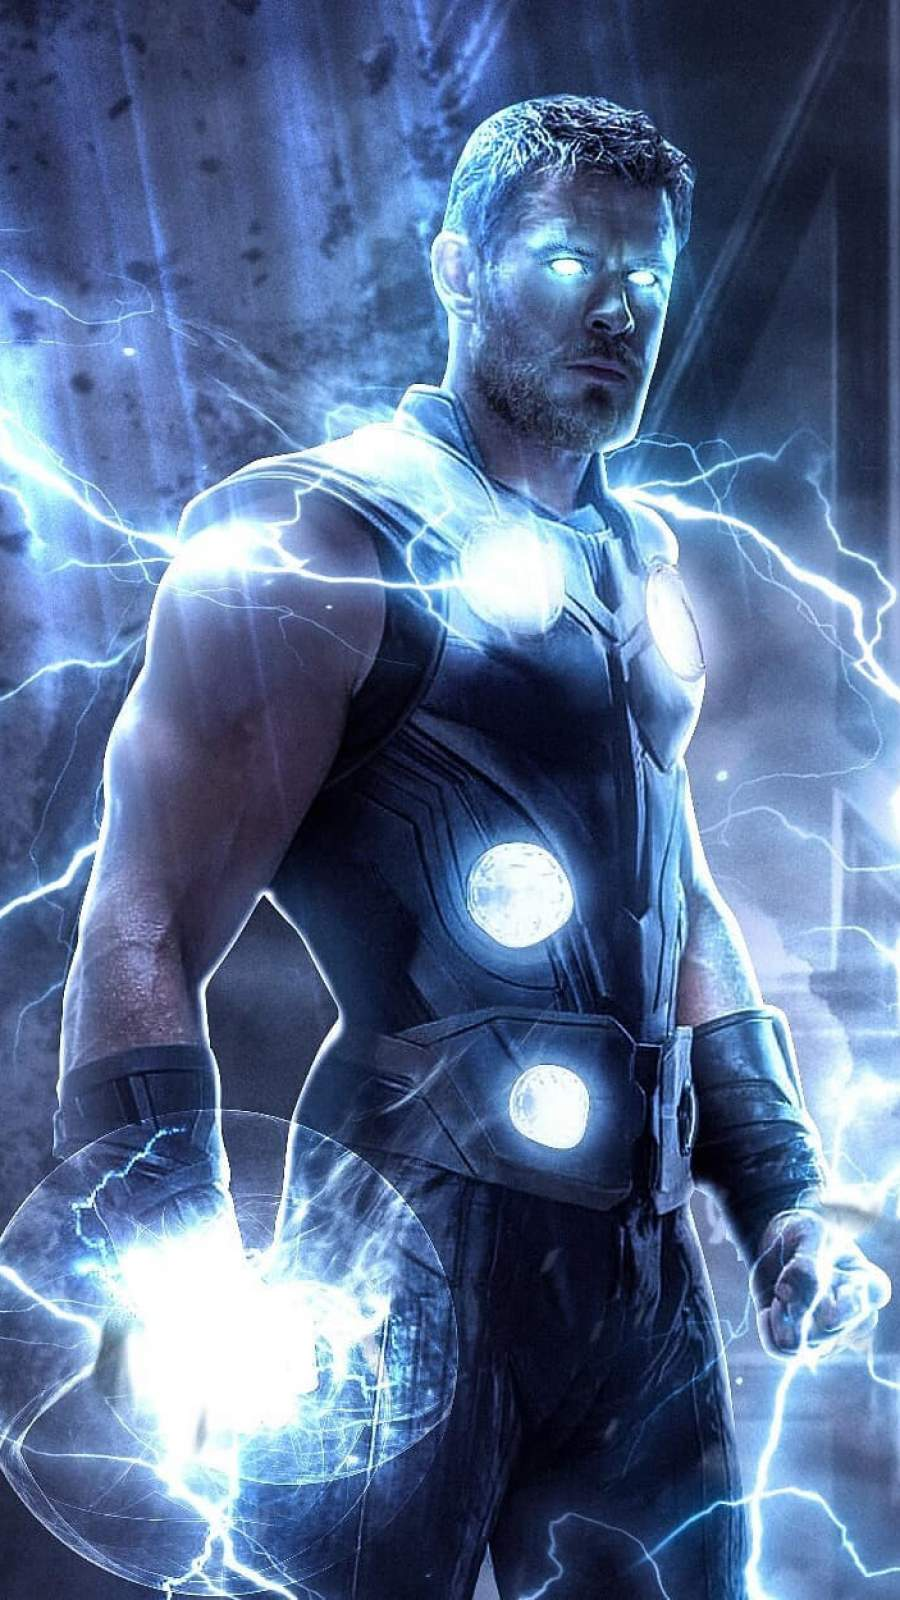 Iphone Wallpaper Quotes Love Thor Thunder Iphone Wallpaper Iphone Wallpapers